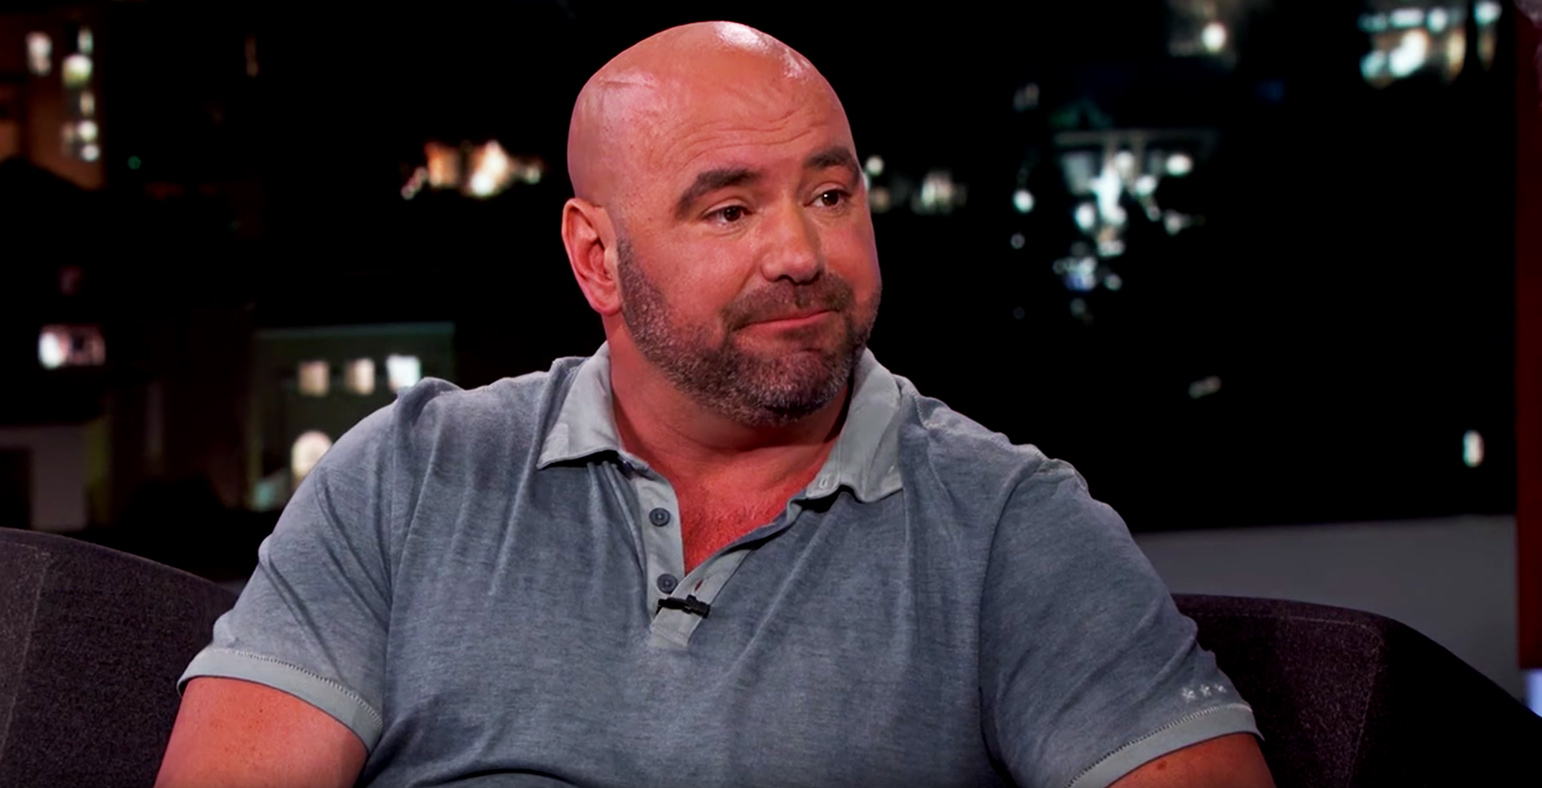 ufc s dana white on speaking at republican national convention